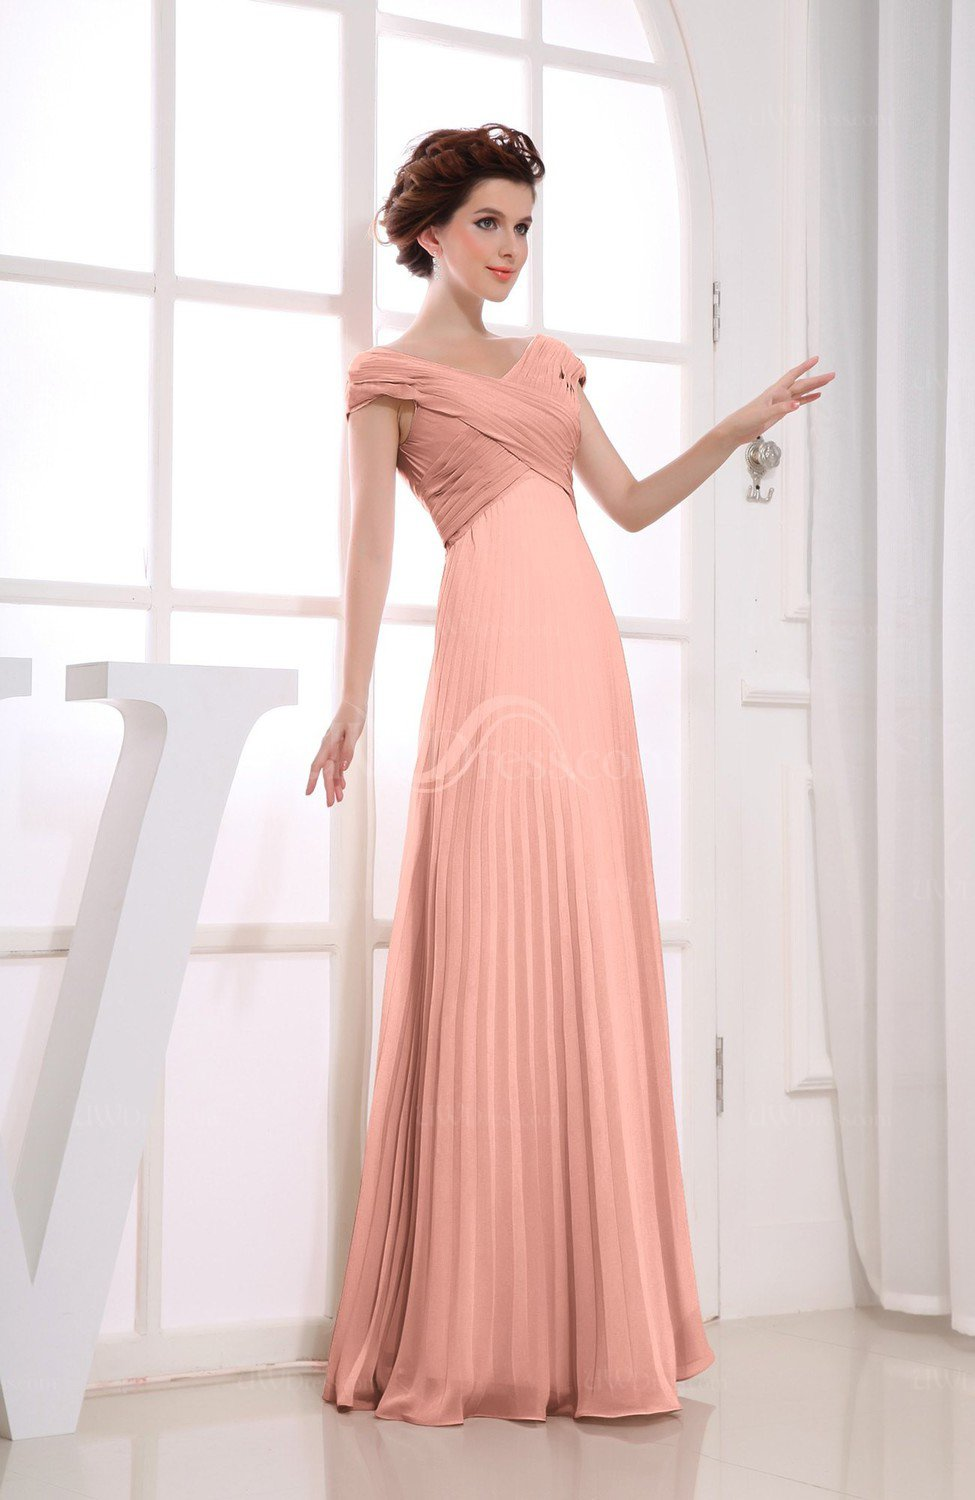 ee370d3abff Vintage Empire Short Sleeve Zipper Chiffon Floor Length Bridesmaid Dresses